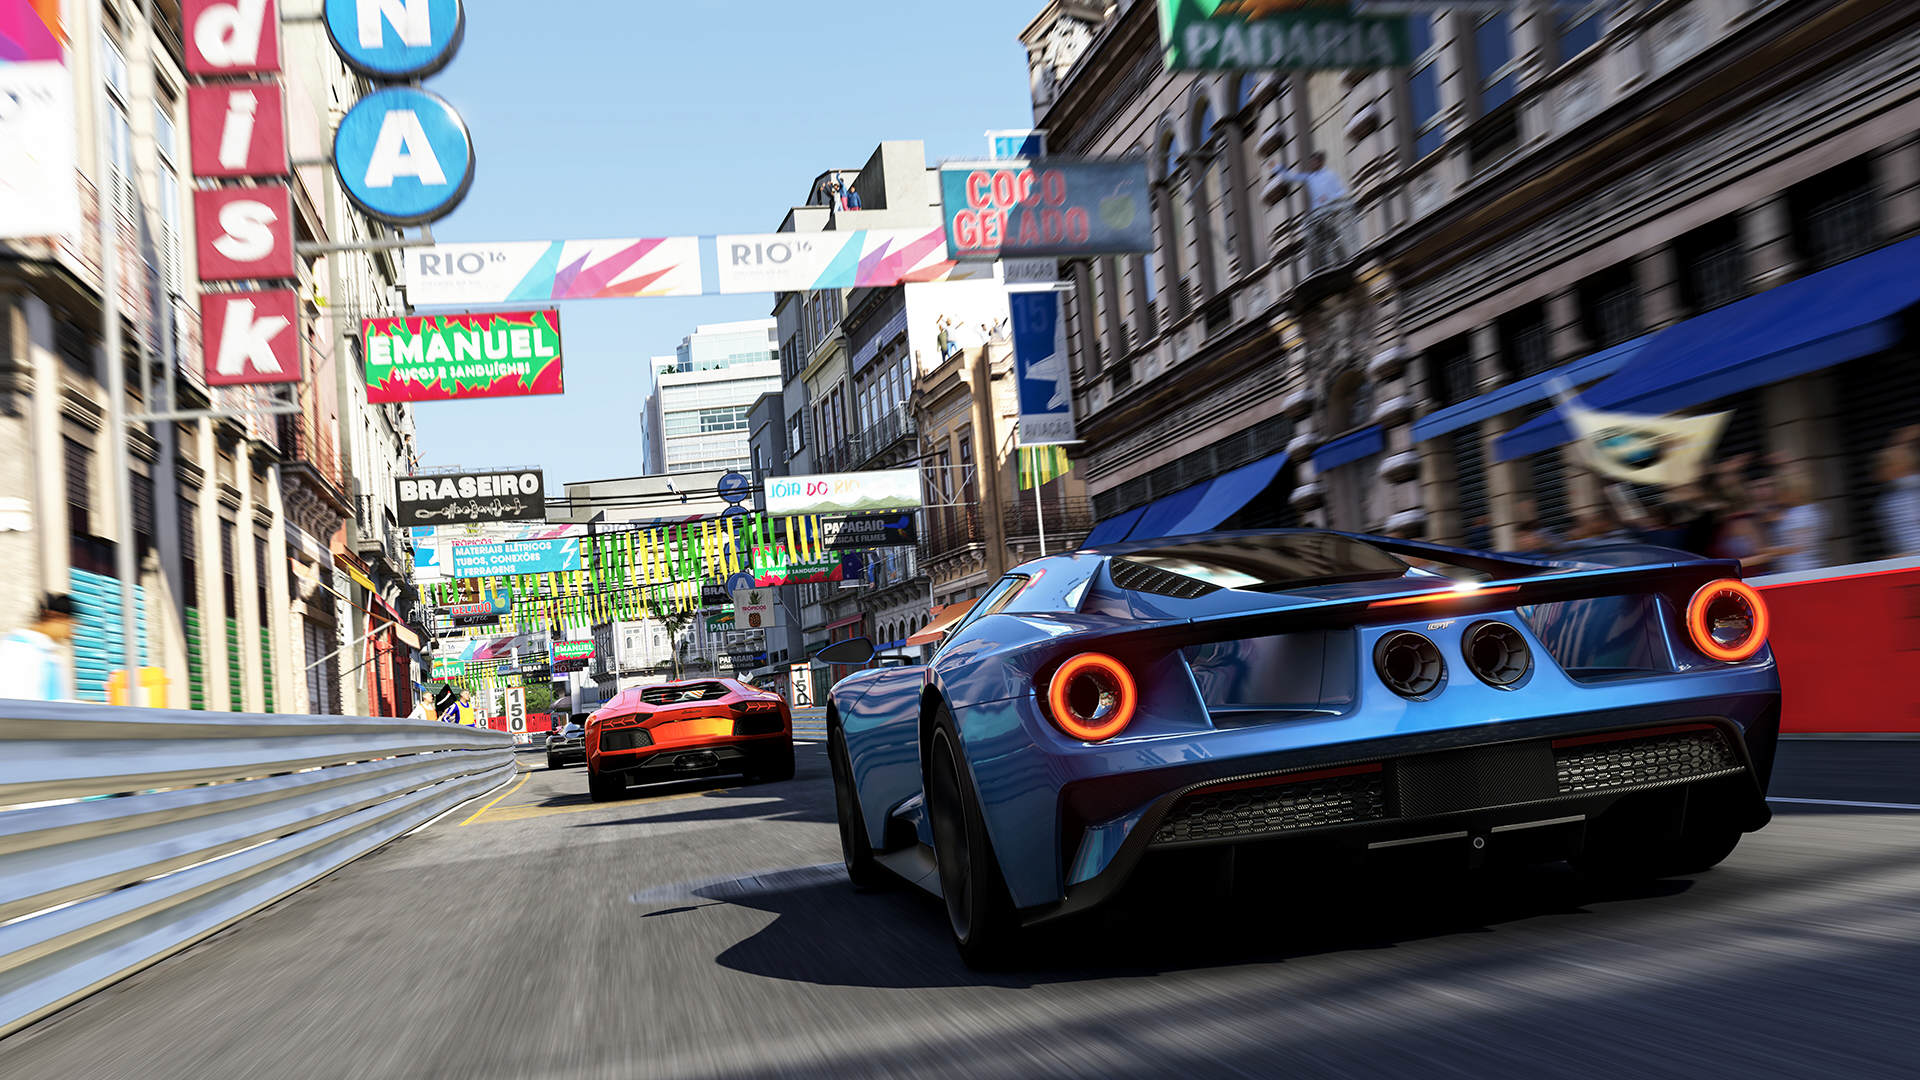 Forza 6s Upcoming Expansion Details Have Leaked On Amazon f3fed74c 28b3 4ffa 8c6b 6e46bd6fe106